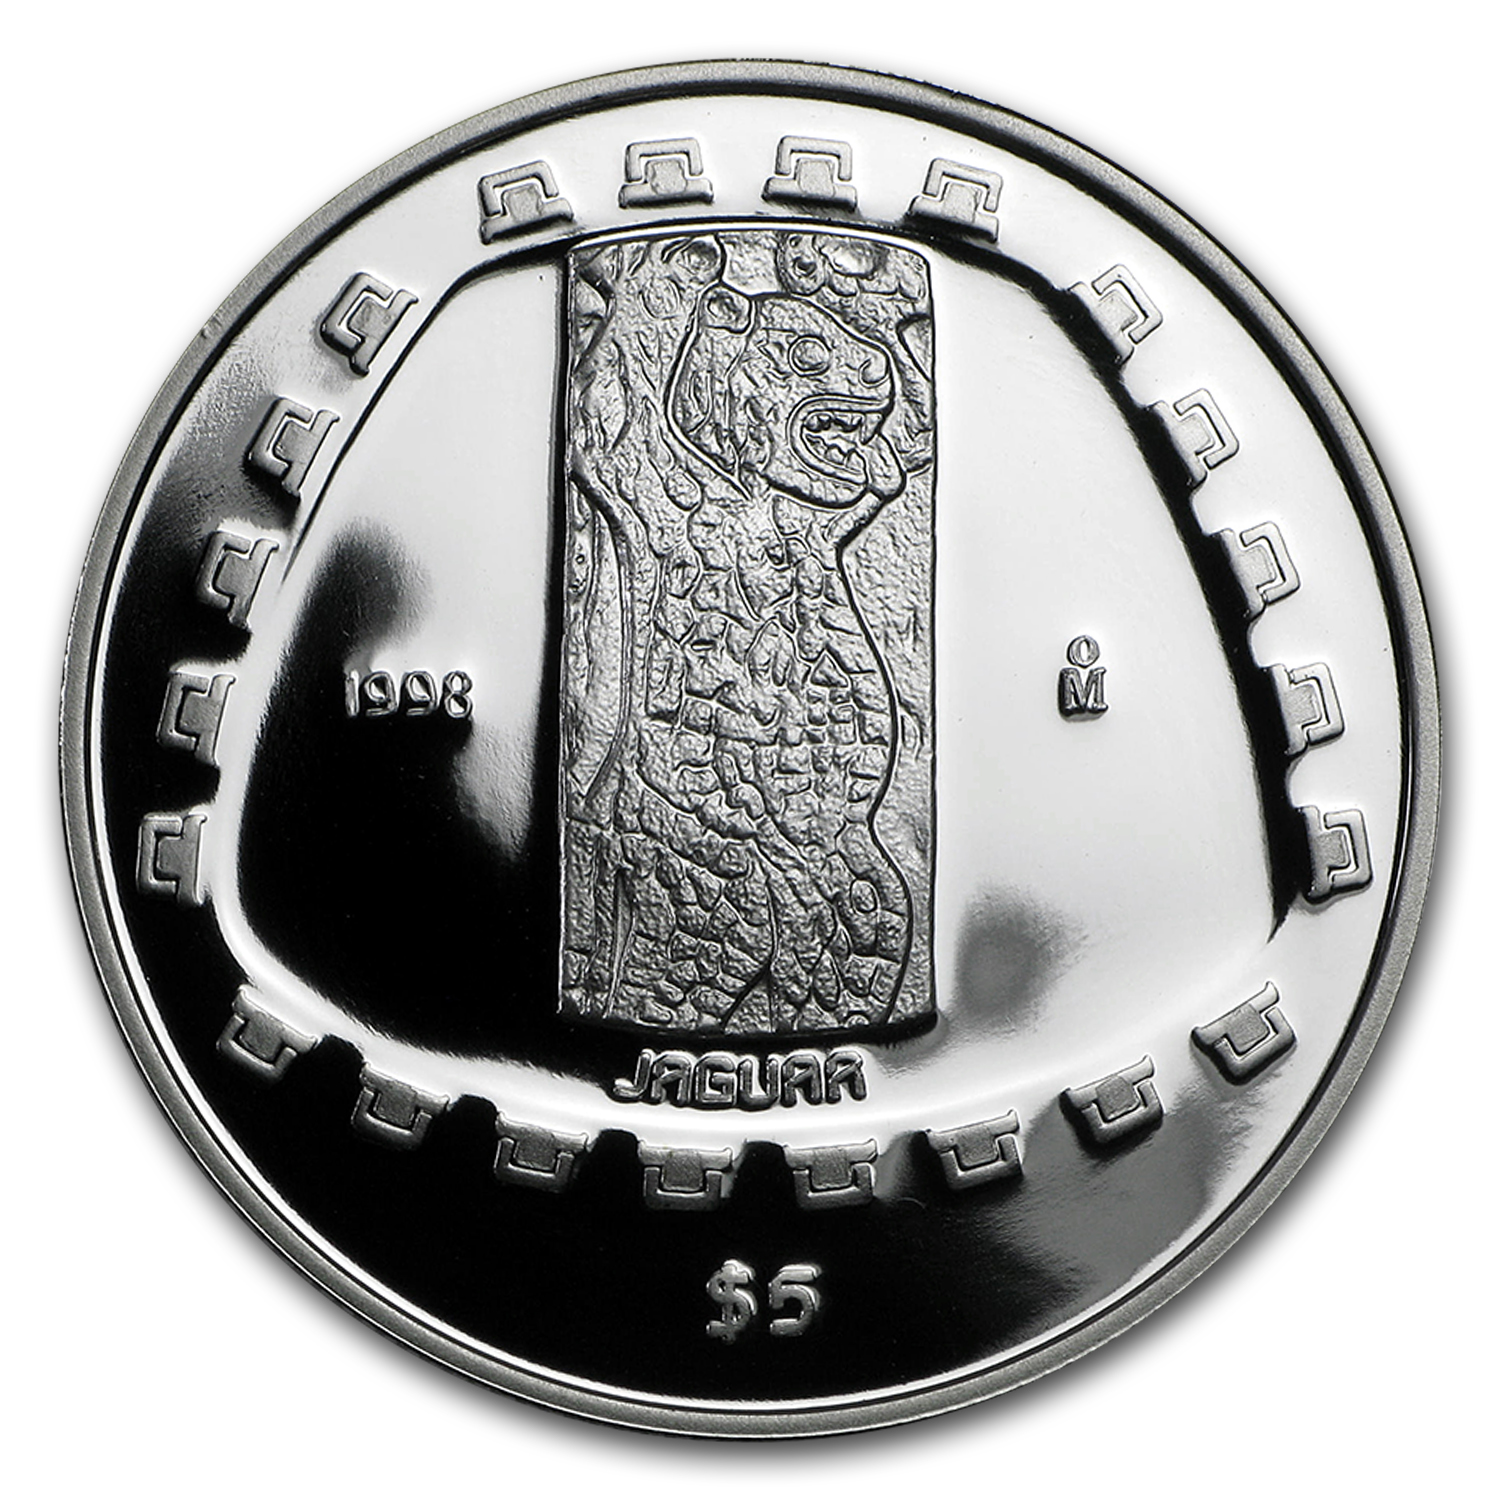 1998 1 oz Silver Mexican 5 Pesos Jaguar Proof